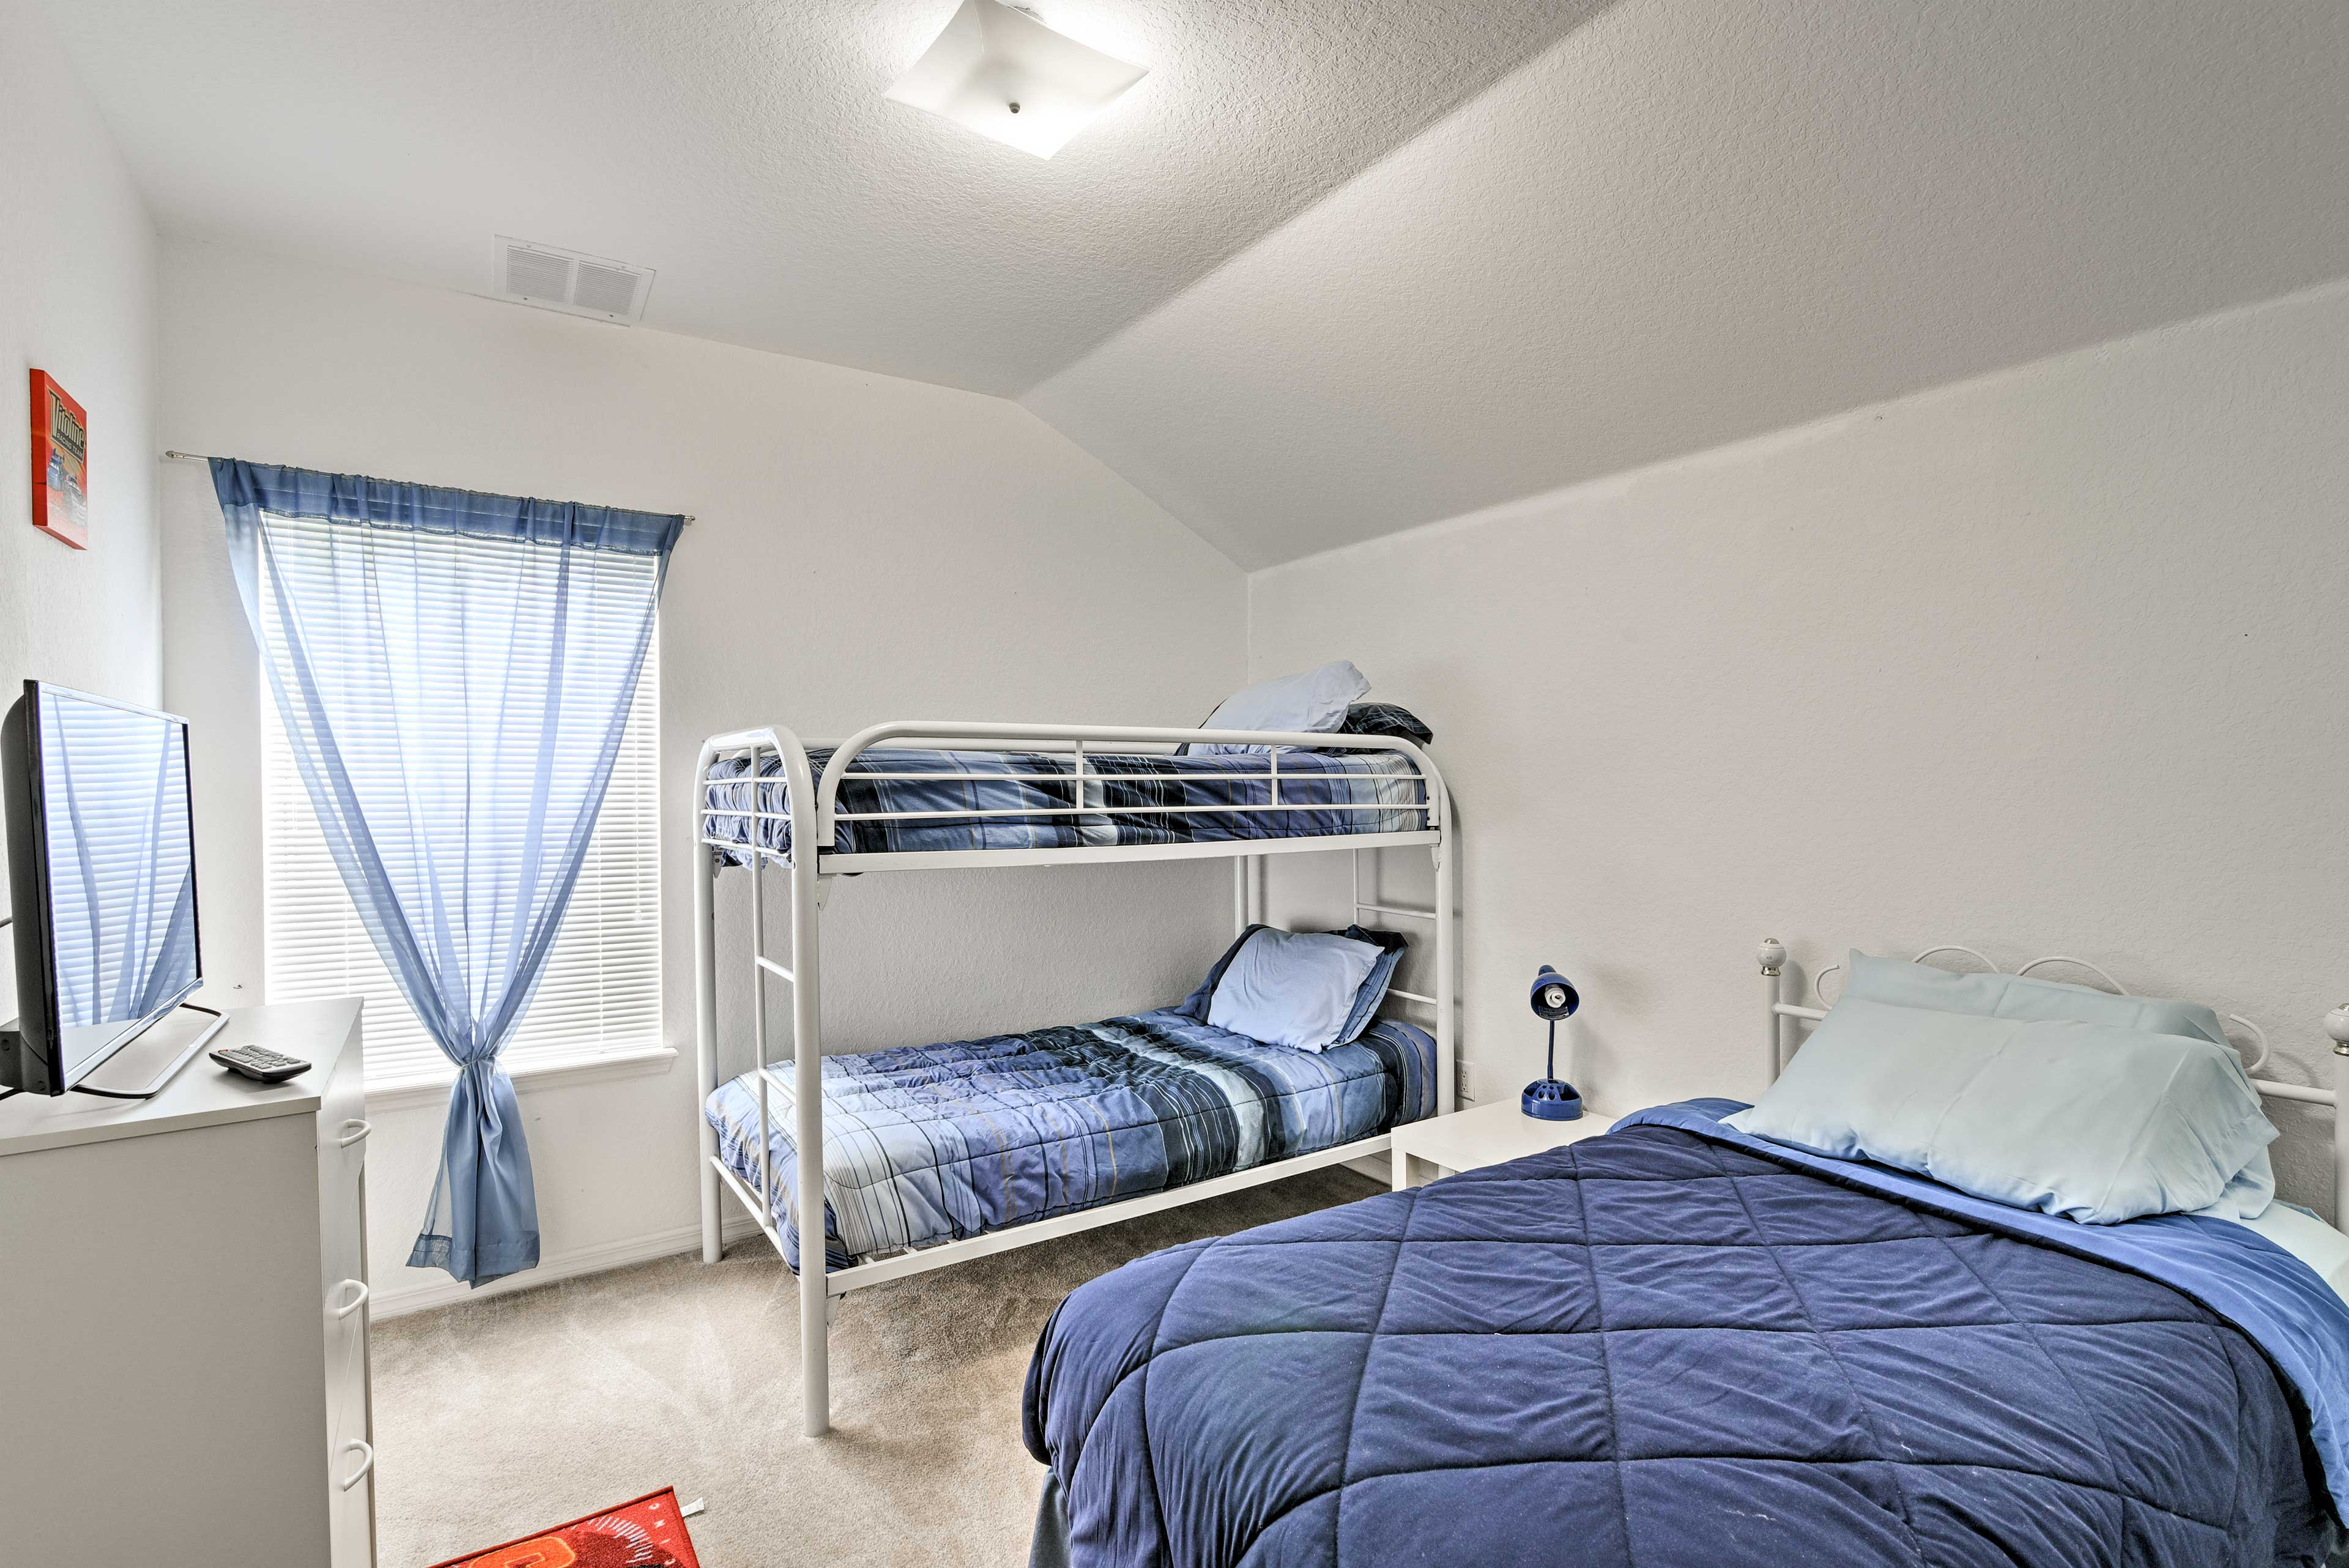 The third bedroom has a twin-sized bed and a twin-over-twin bunk bed.